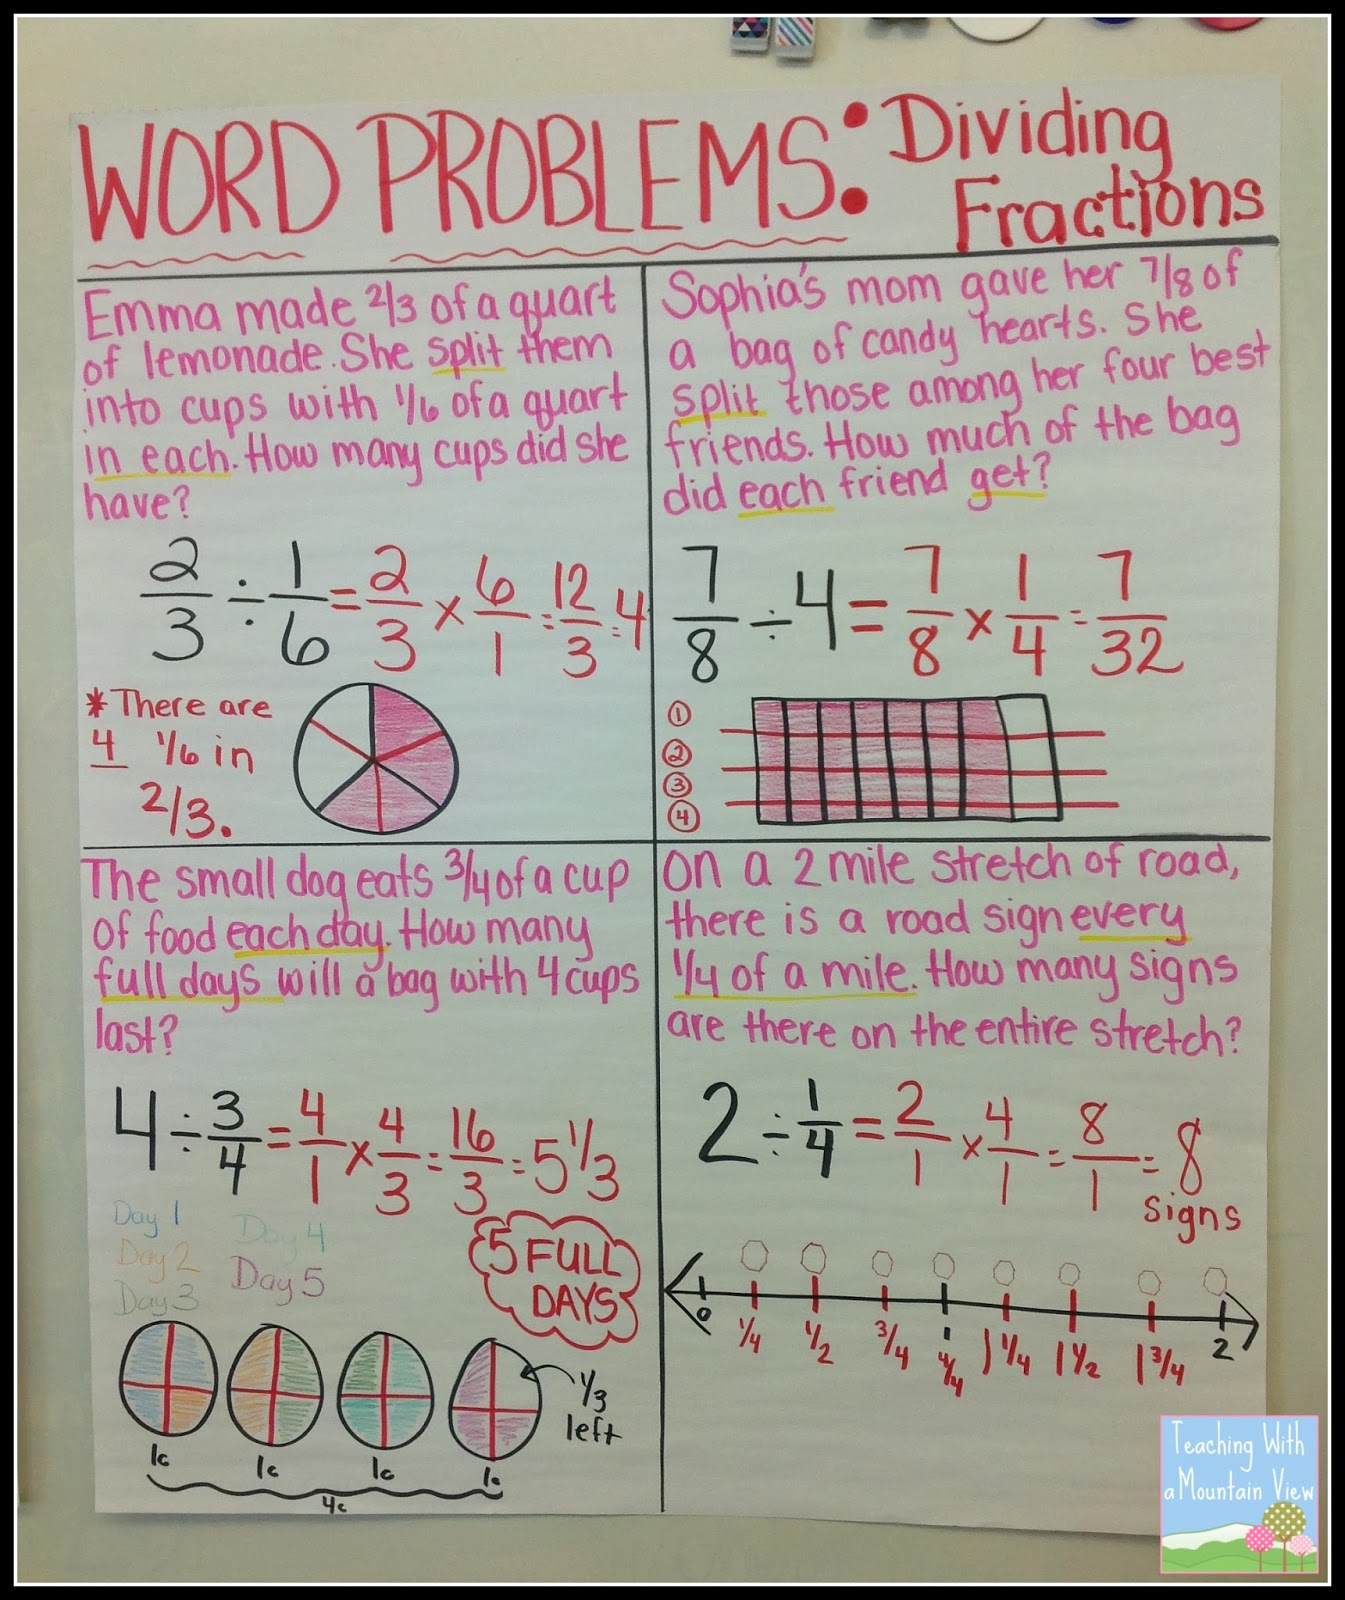 worksheet Multiplying And Dividing Fractions Word Problems teaching with a mountain view making sense of multiplying we dissected these word problems underlined key phrases that they felt helped them to know what type problem were reading and